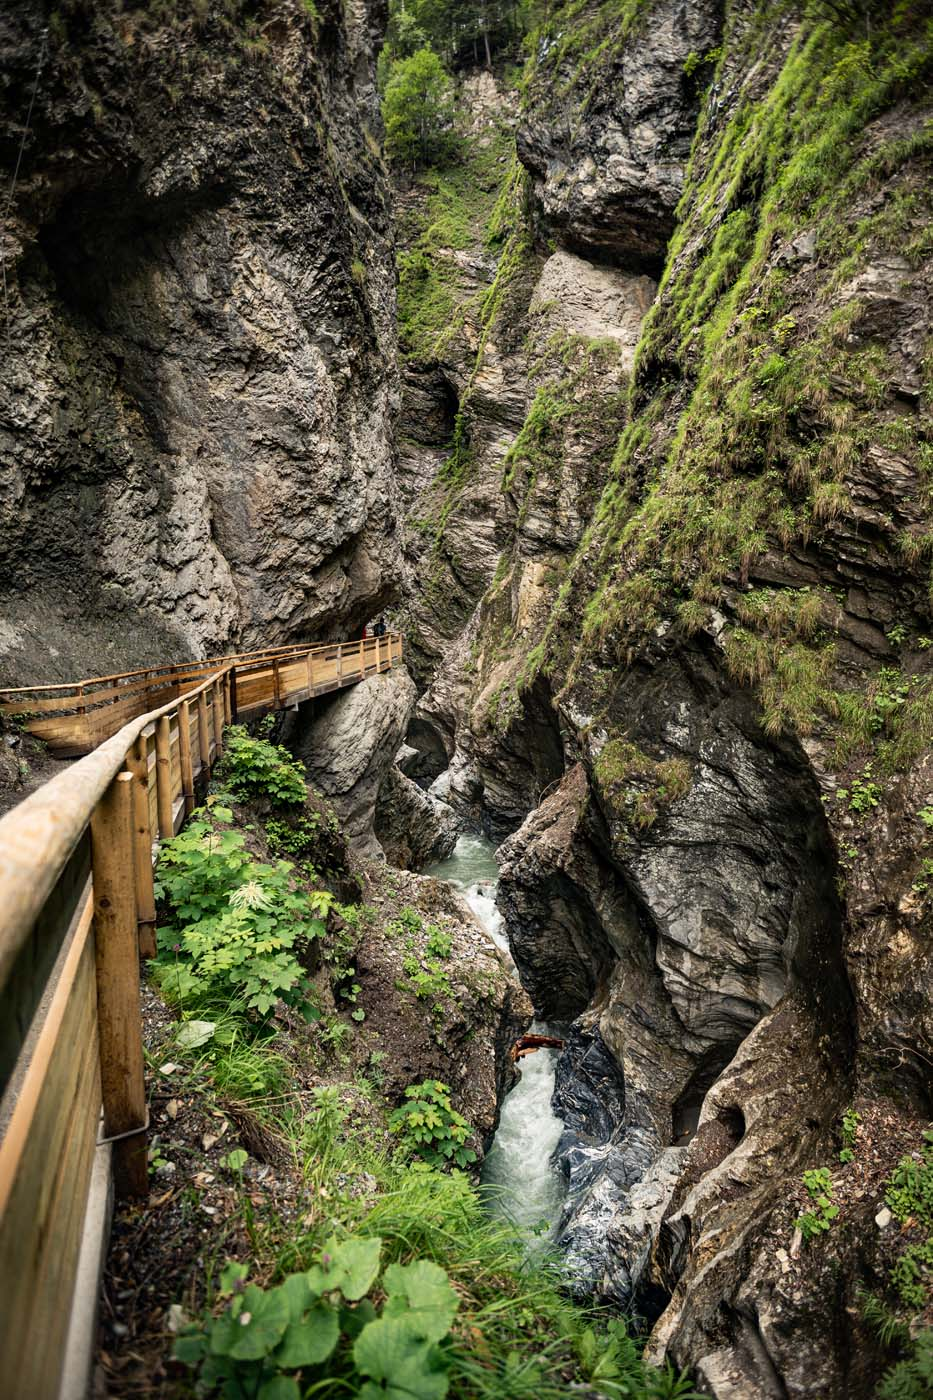 waterfall, reopening, favourite place, sightswürdigkeit